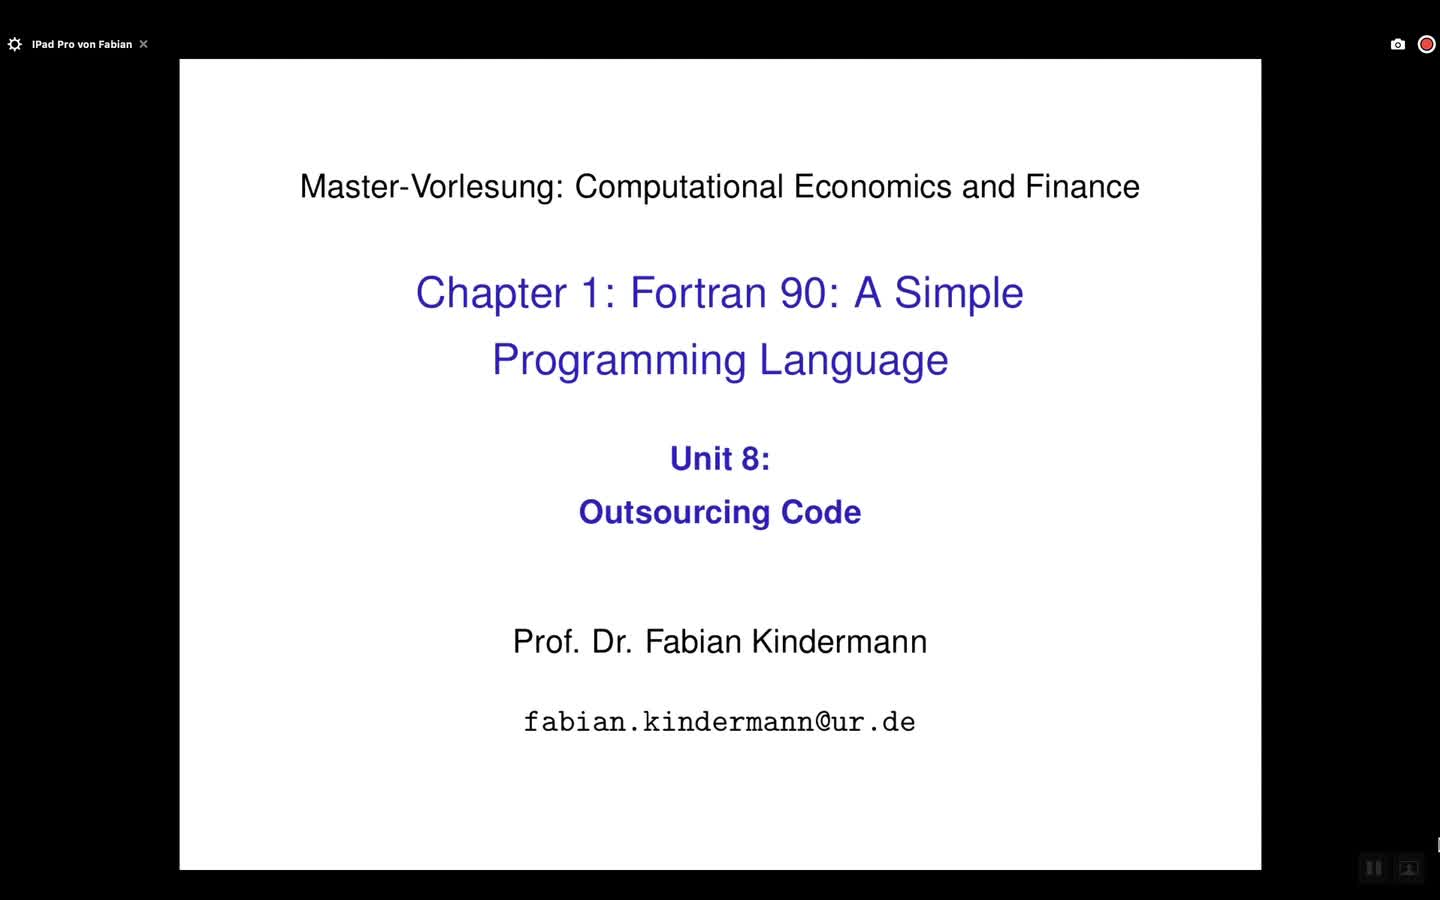 Chapter 1 - Unit 8 - Outsourcing Code